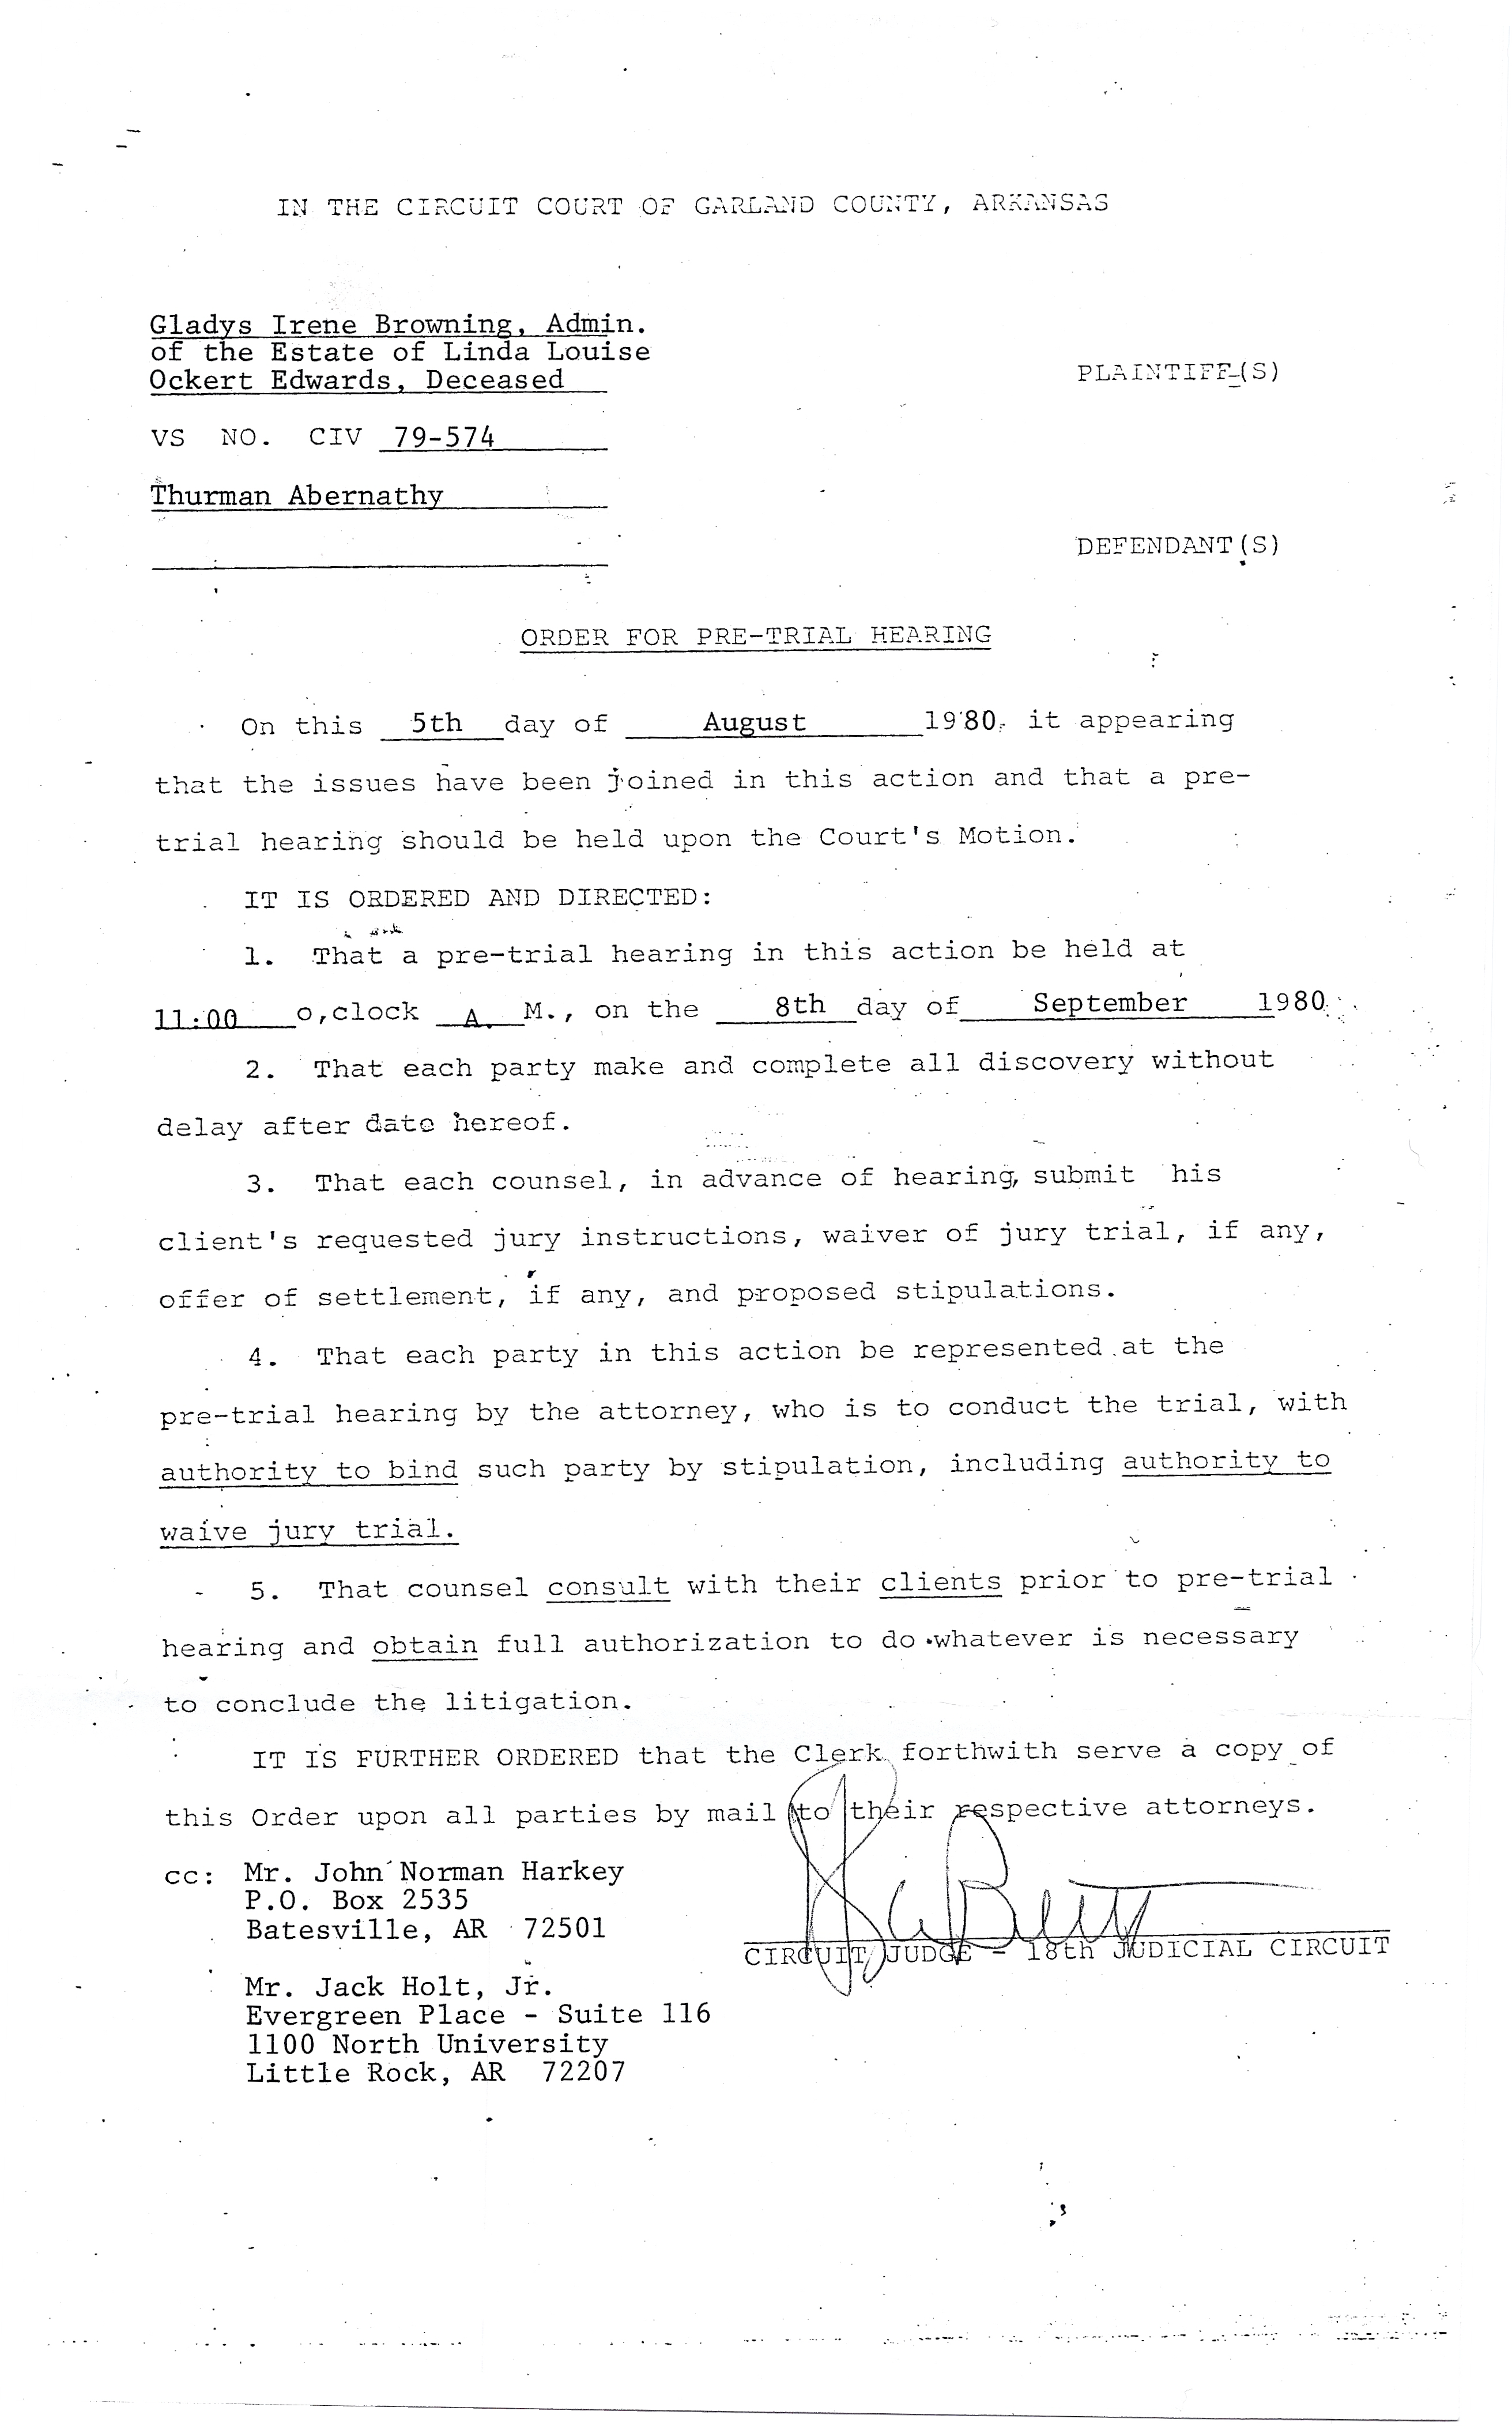 order_for_pre-trial_hearing_ii0001